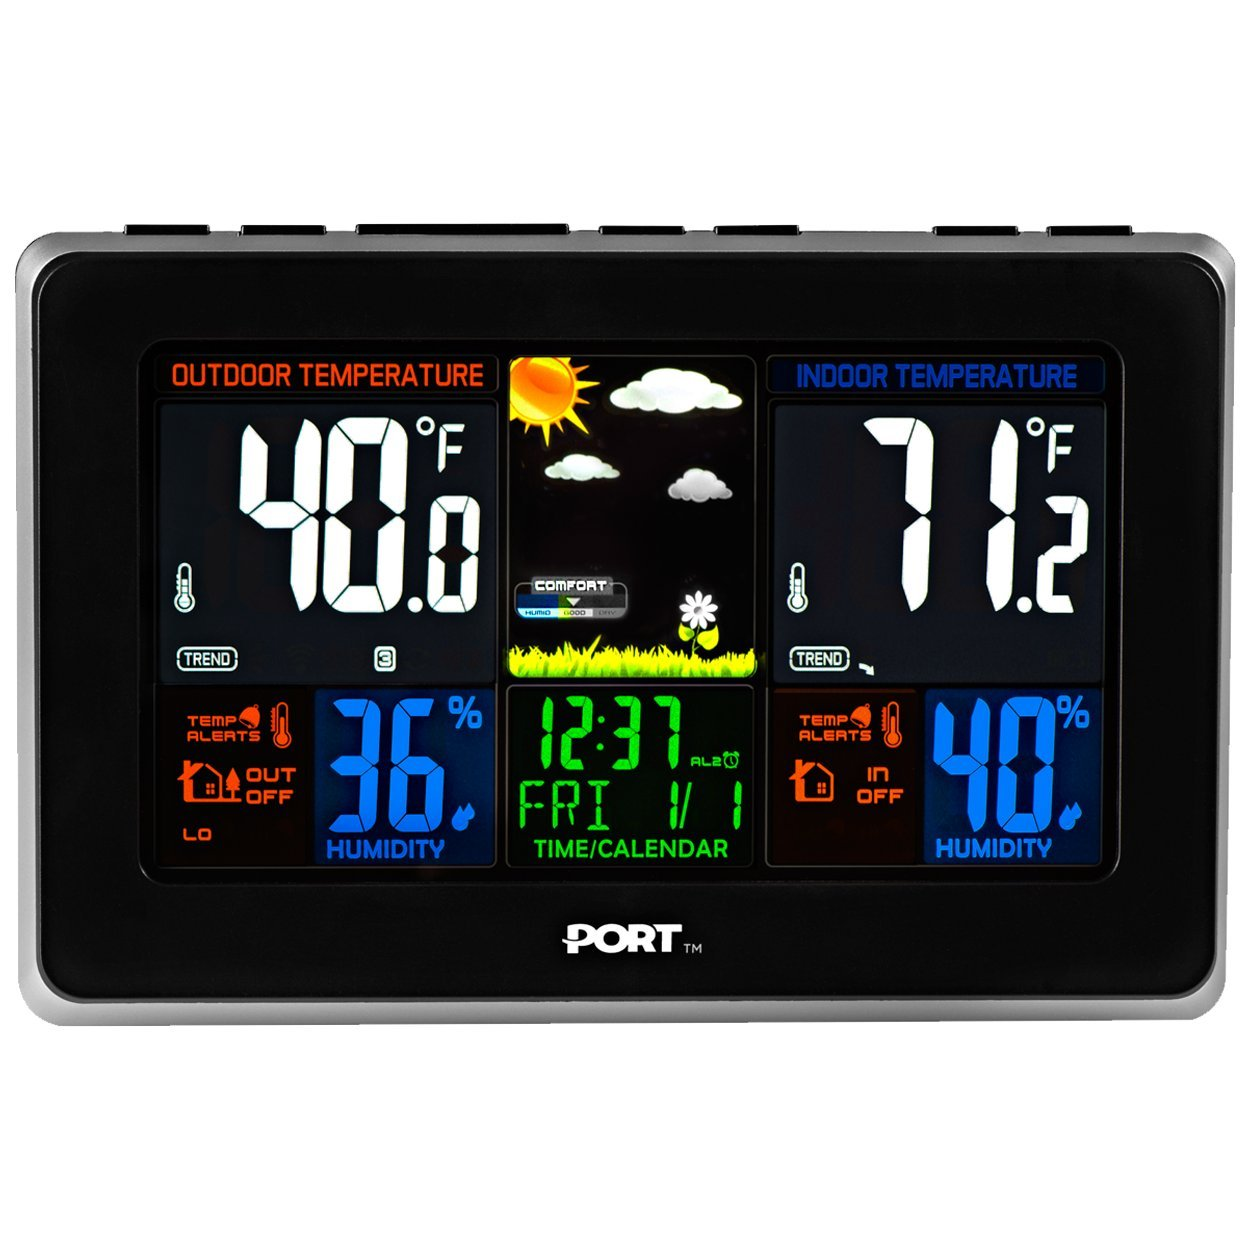 PORT [Newest Version] Wireless Weather Station Weather Forecast Digital Alarm Clock, Indoor and Outdoor Use, Temperature, Humidity, Date and Time Readings, Colored Backlit Display, Snooze Option